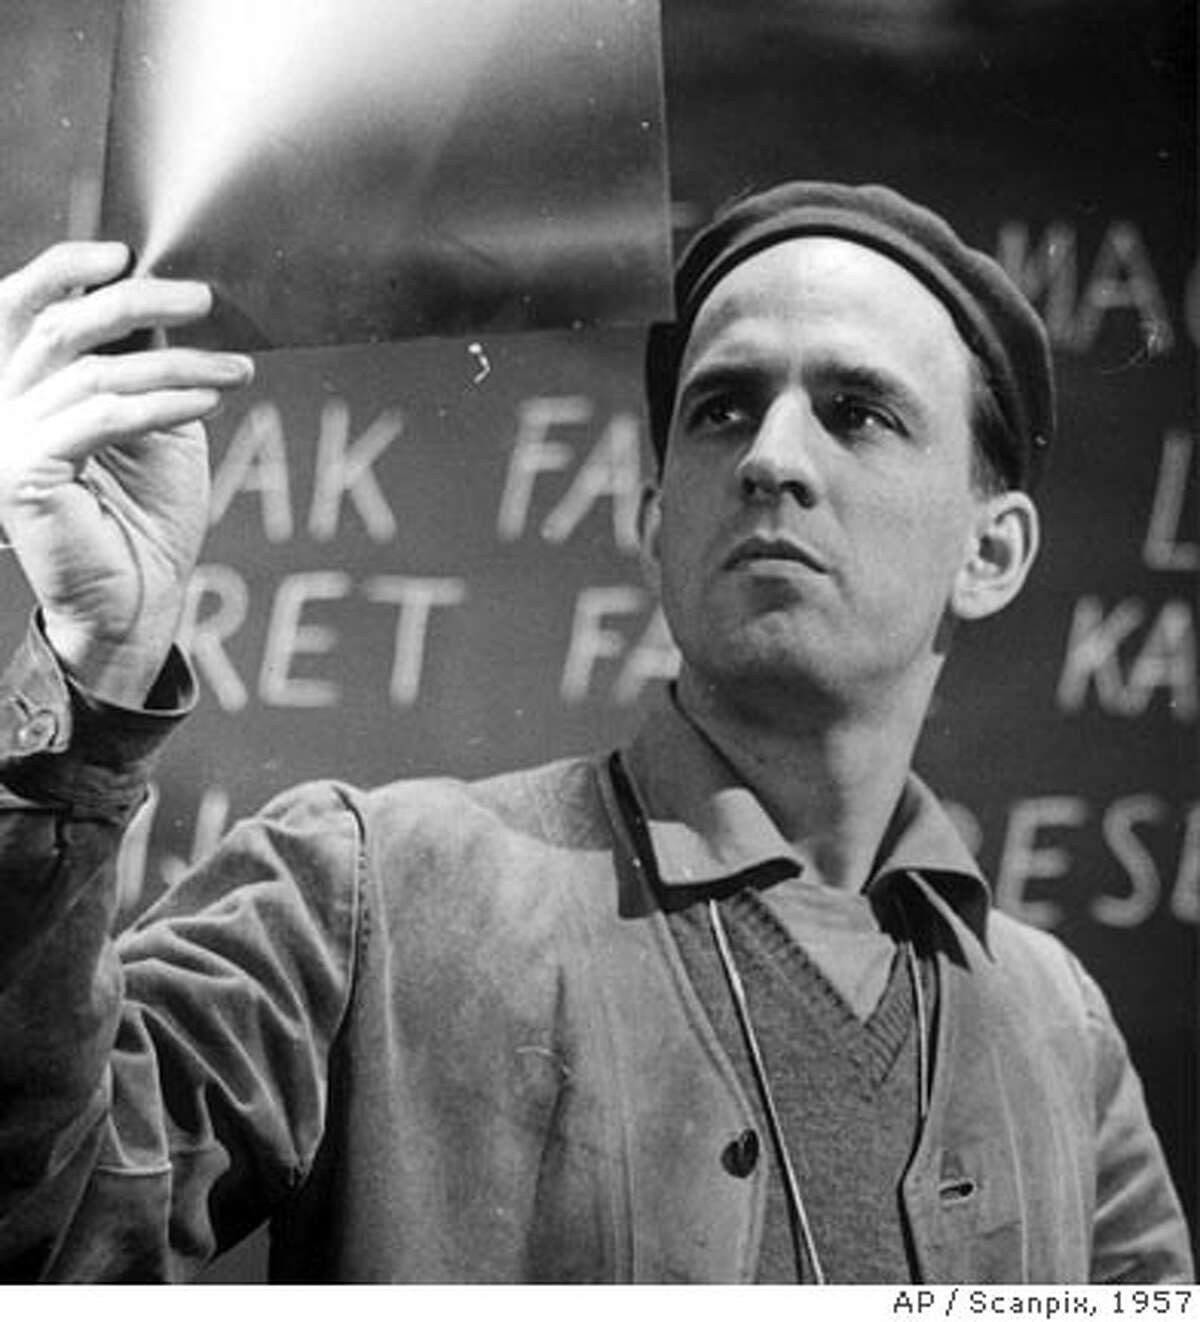 ** FILE ** Legendary Swedish film director Ingmar Bergman, is seen in Stockholm, Sweden, in this file photo dated 1957. Ingmar Bergman has died, Swedish news agency TT reported July 30, 2007. He was 89 years old. (AP Photo / Scanpix, File) **SWEDEN OUT **